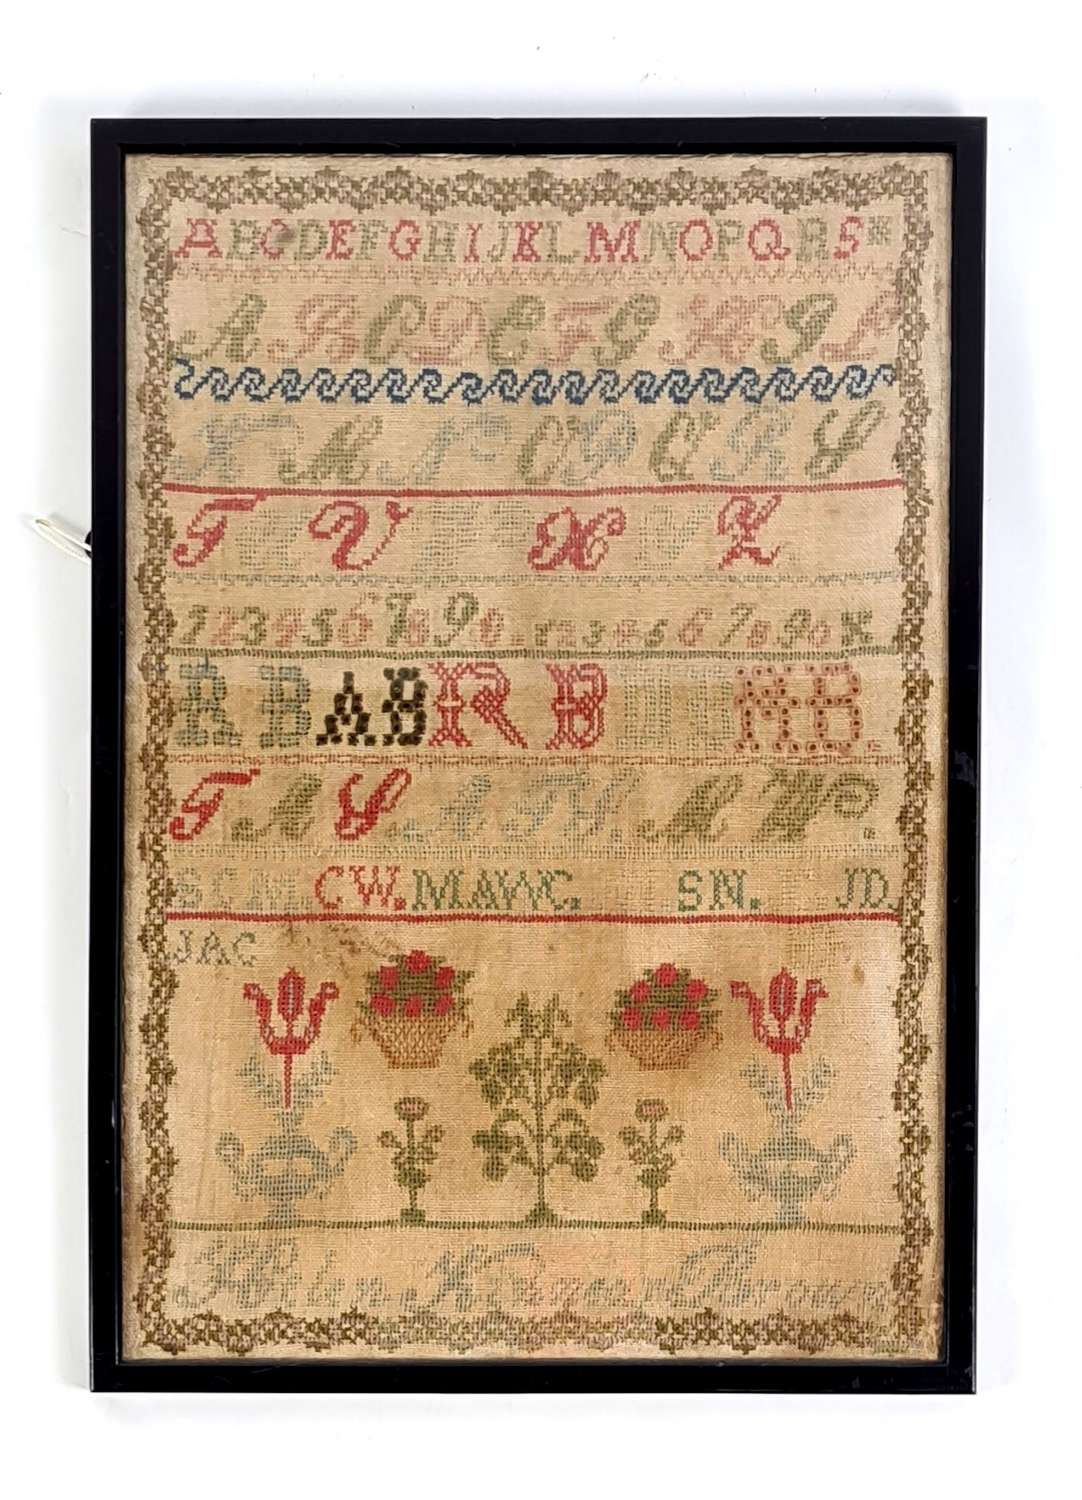 Sampler by Helen Kinnear Brown